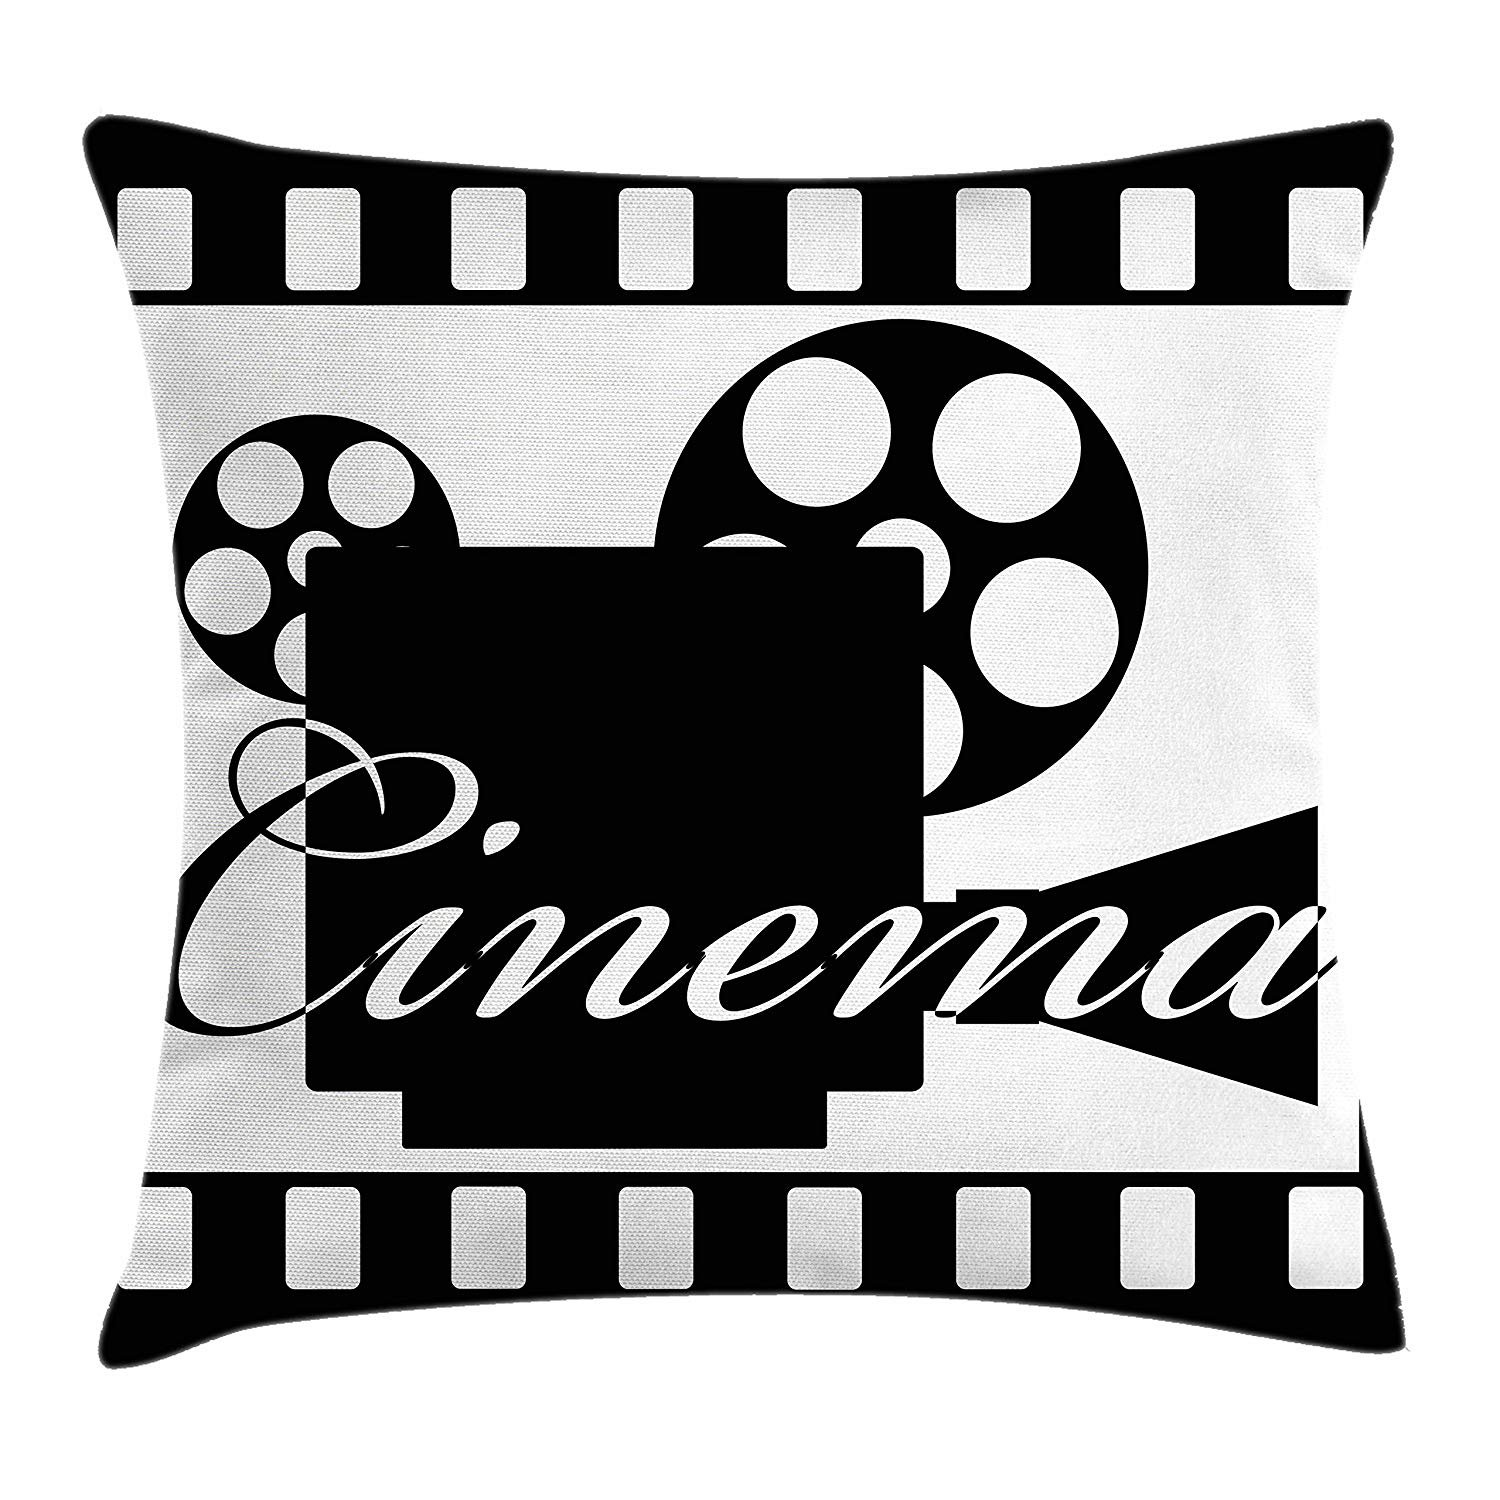 Queen Area Movie Theater Monochrome Cinema Projector inside a Strip Frame Abstract Geometric Pattern Square Throw Pillow Covers Cushion Case for Sofa Bedroom Car 18x18 Inch, Black White